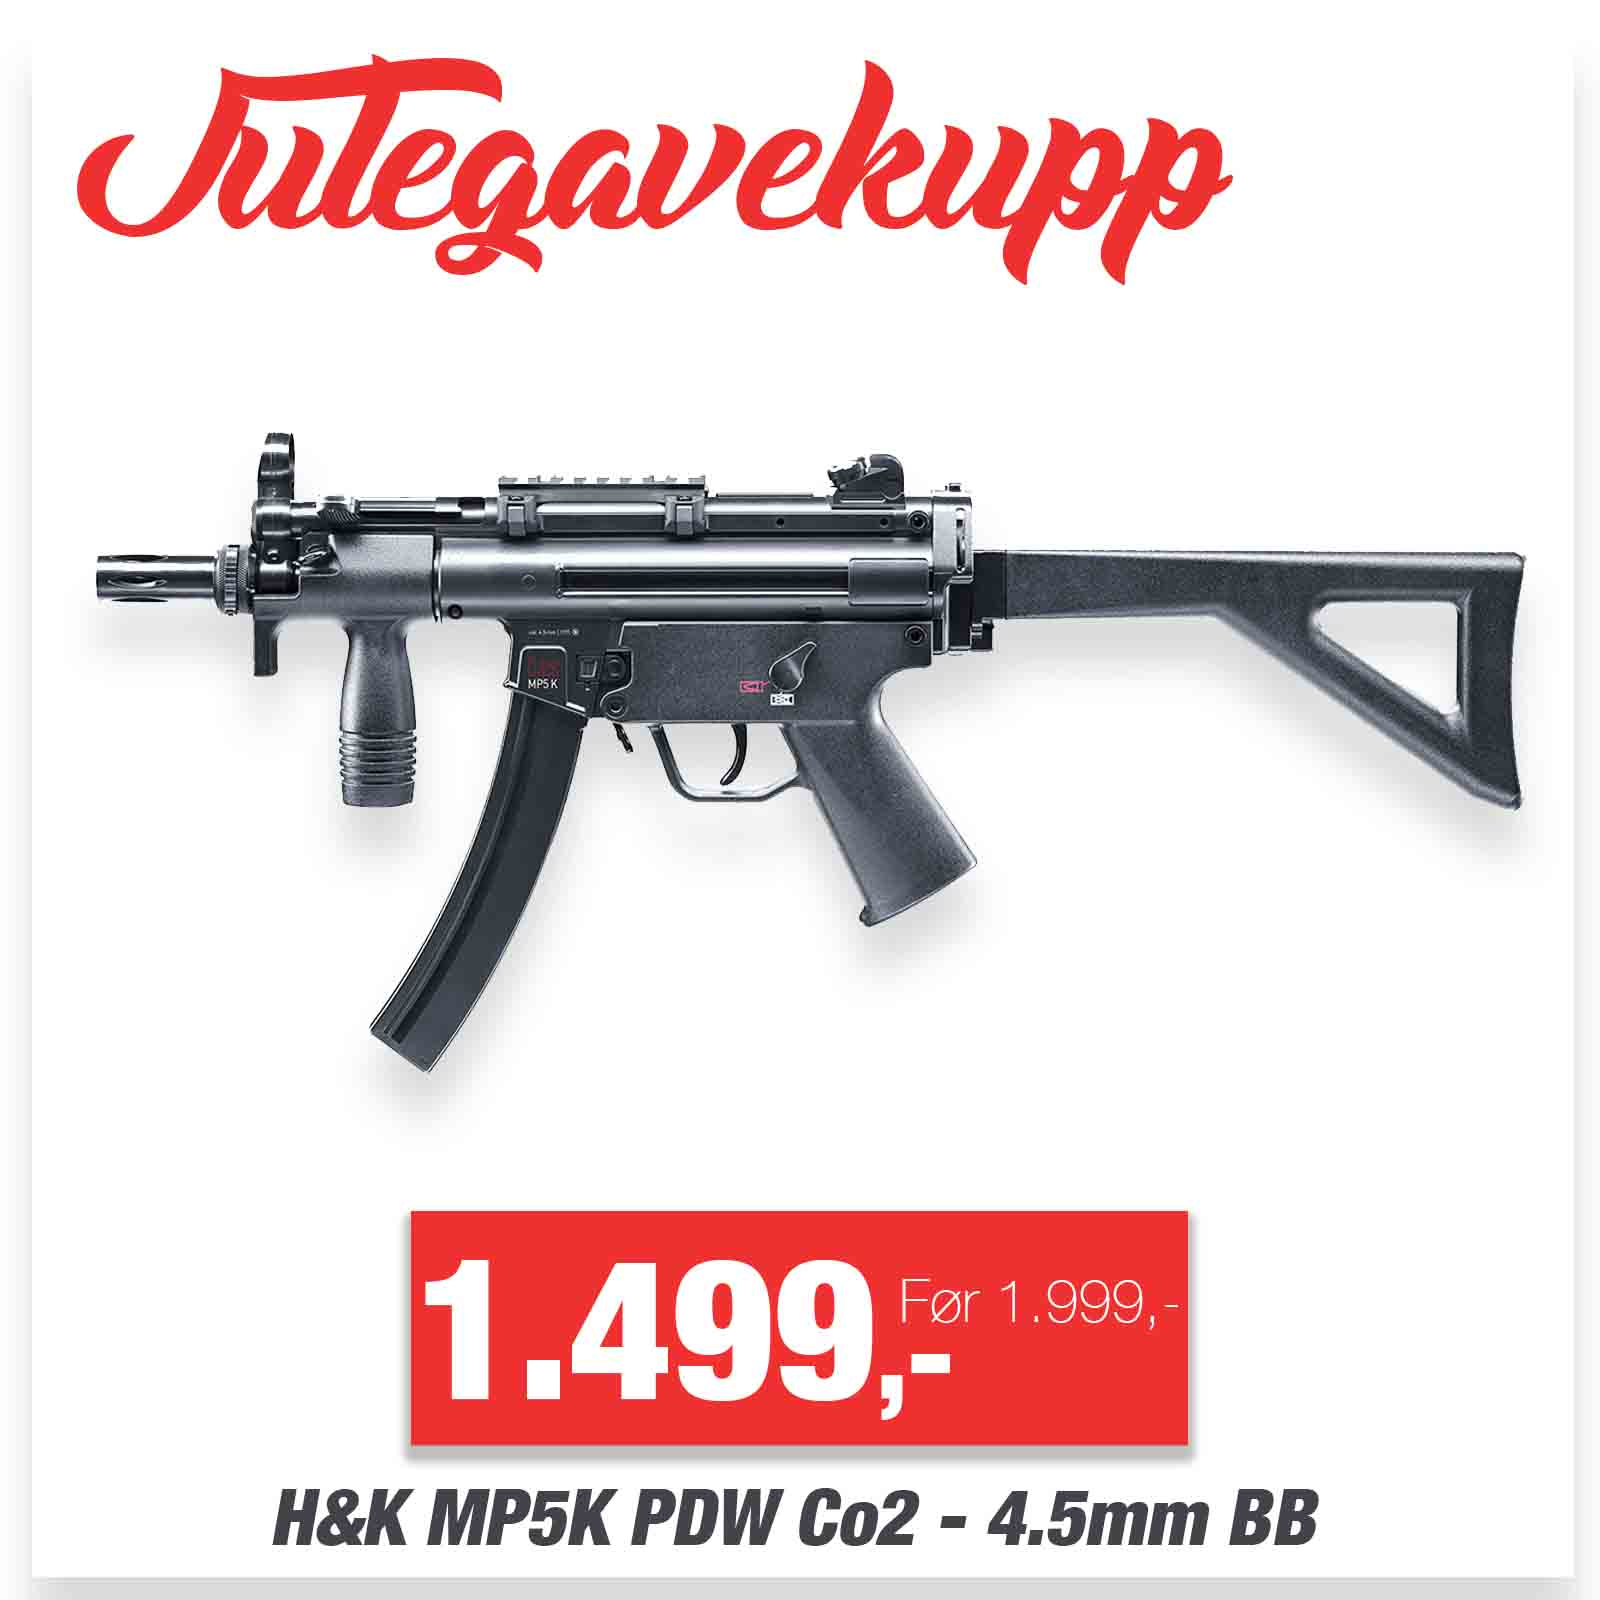 H&K MP5K PDW Co2 Maskin Pistol - 4.5mm BB